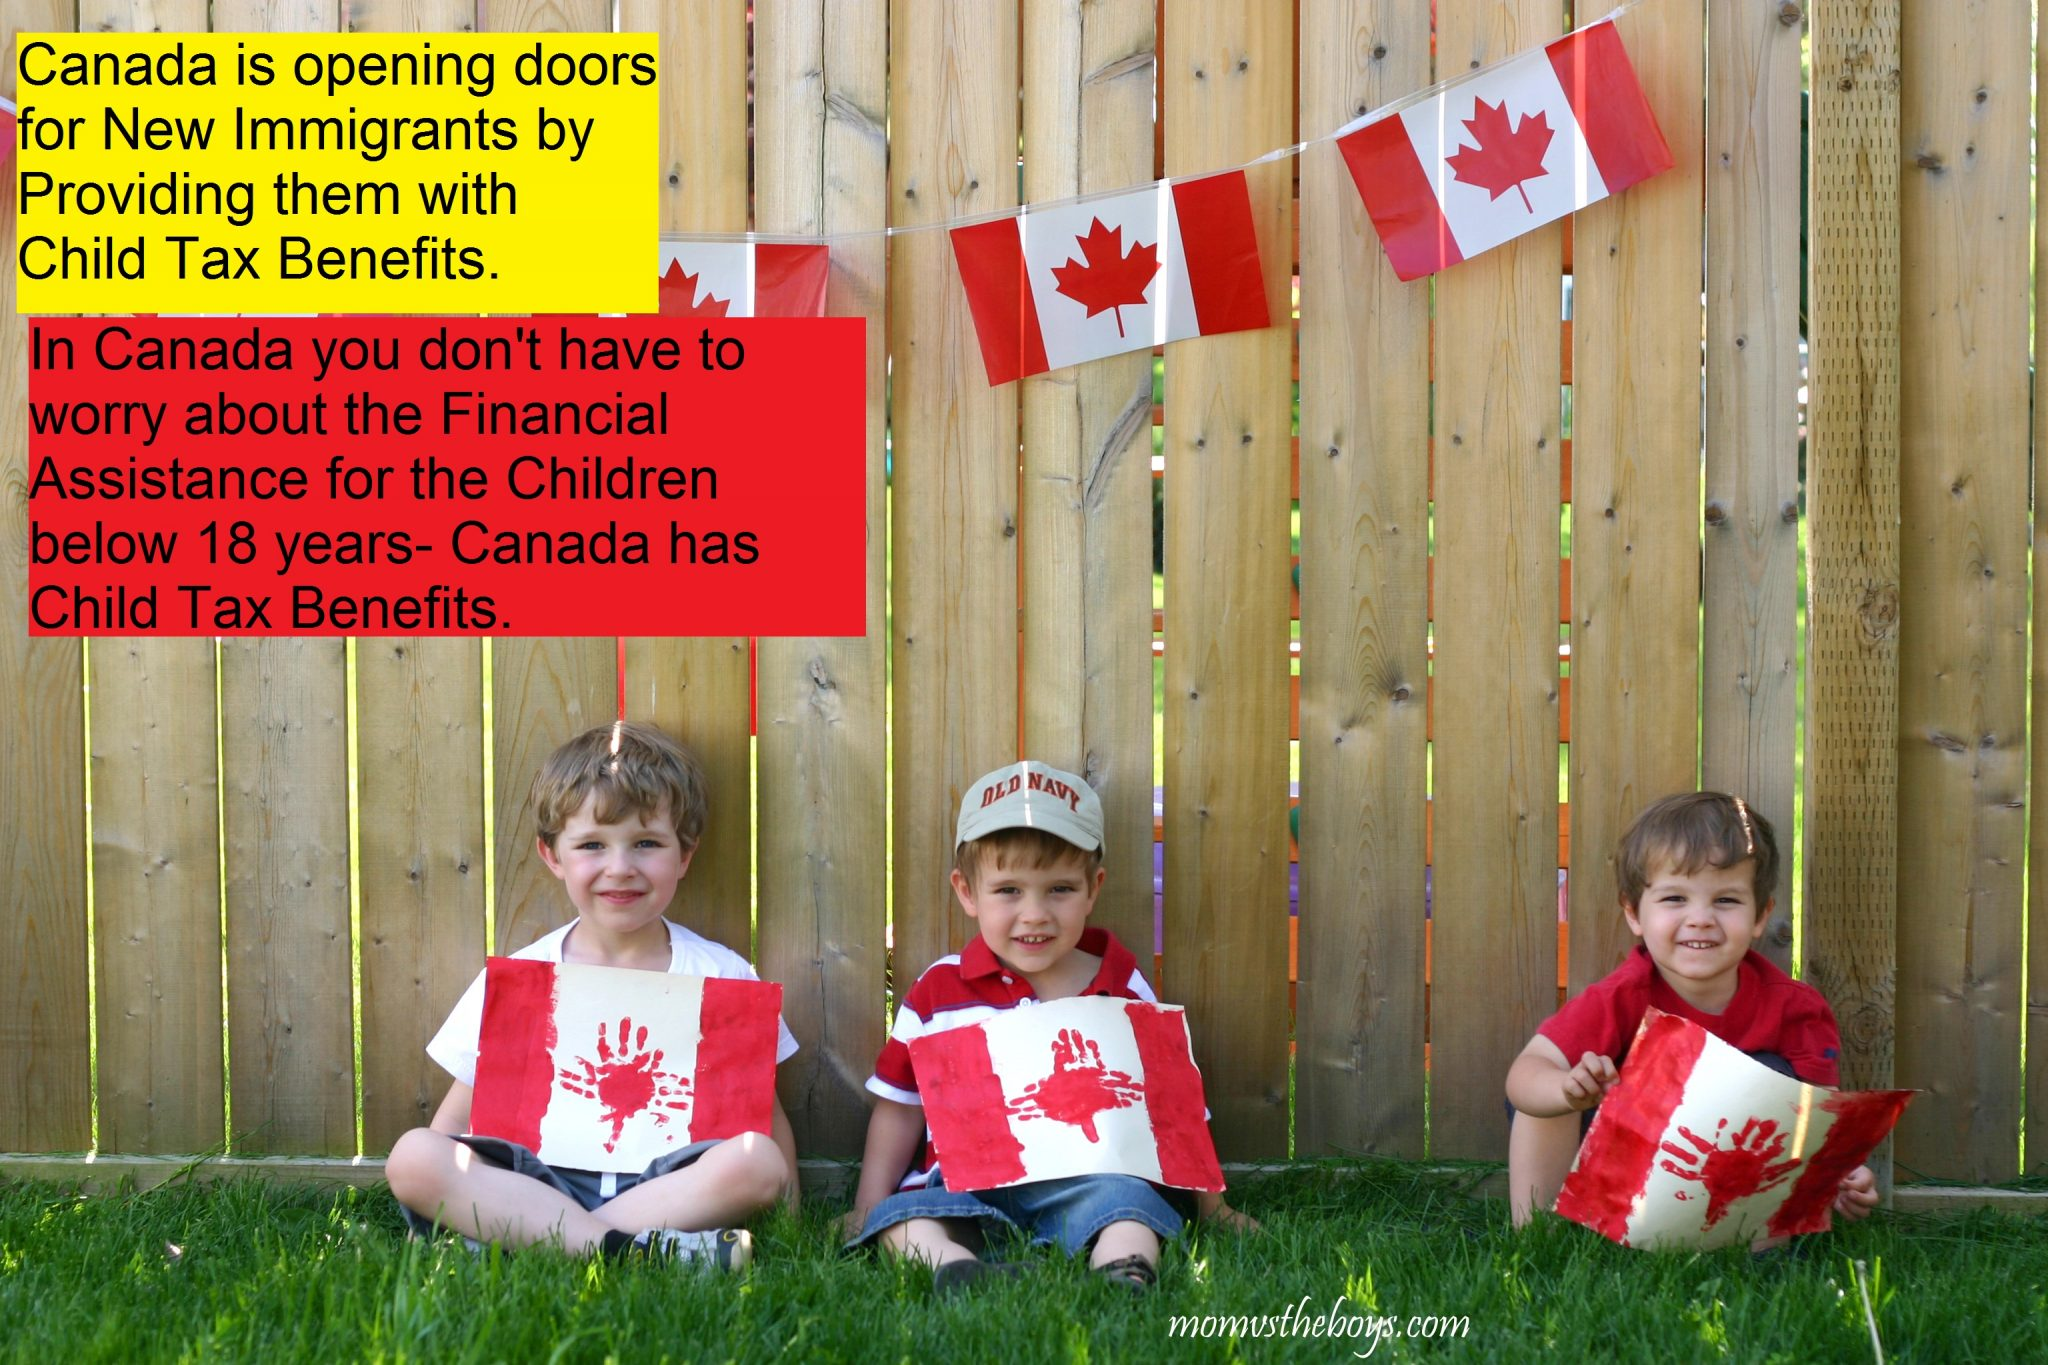 Child Tax Benefit policies for New Immigrants in Canada- Super Beneficial